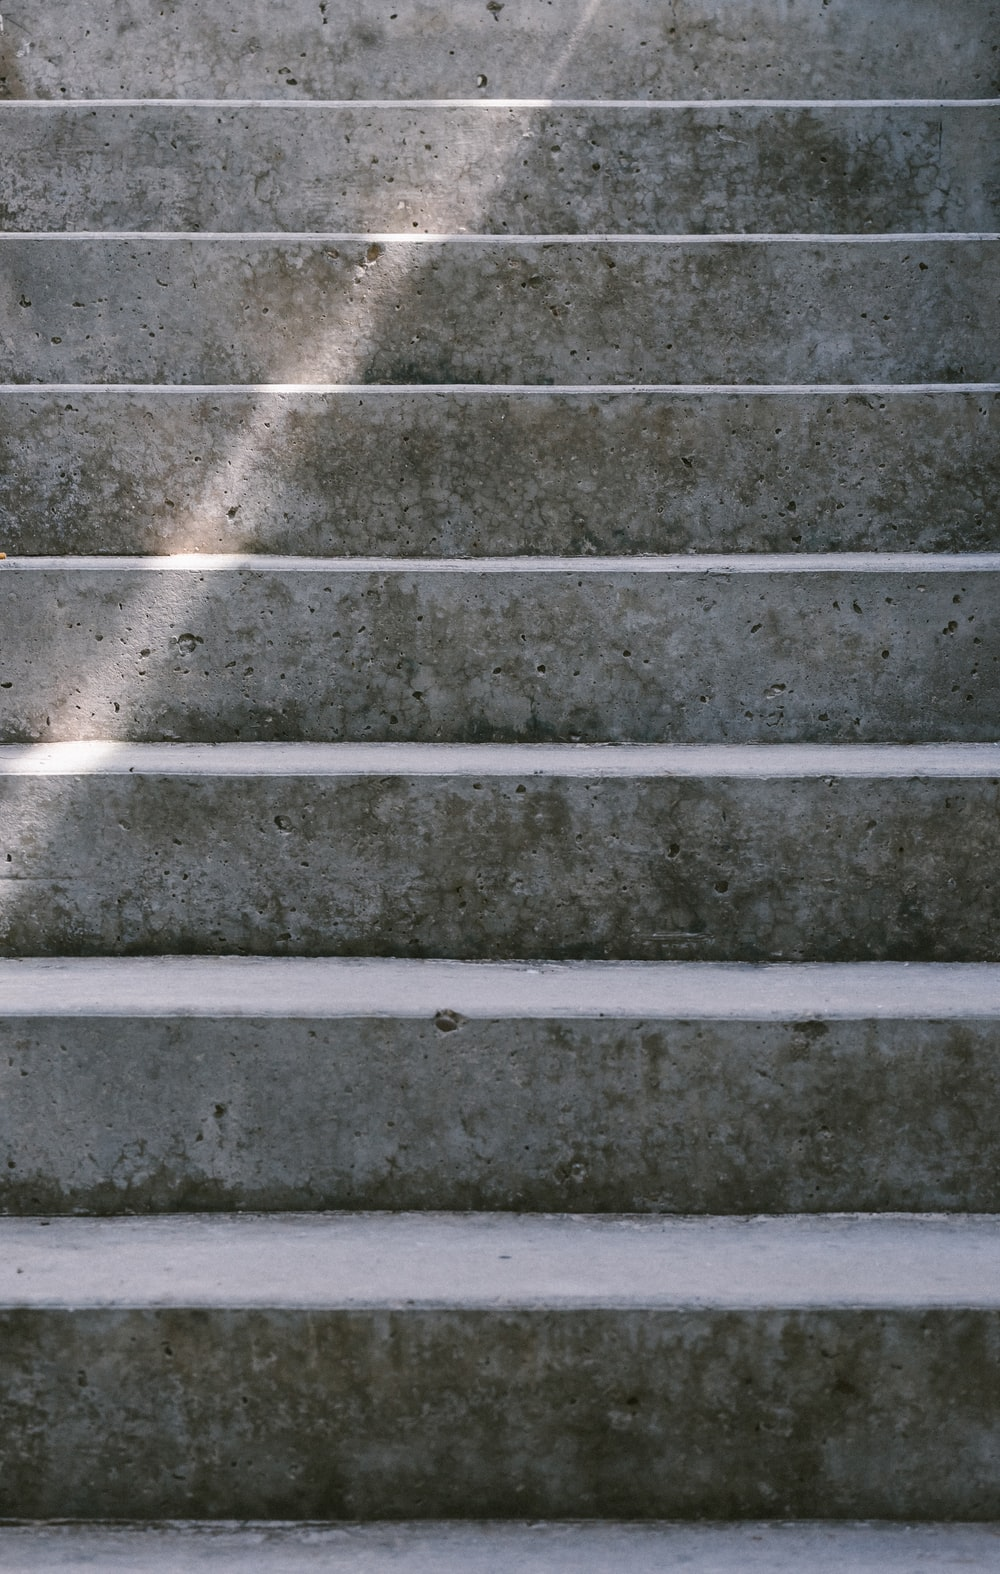 gray concrete stair during day time